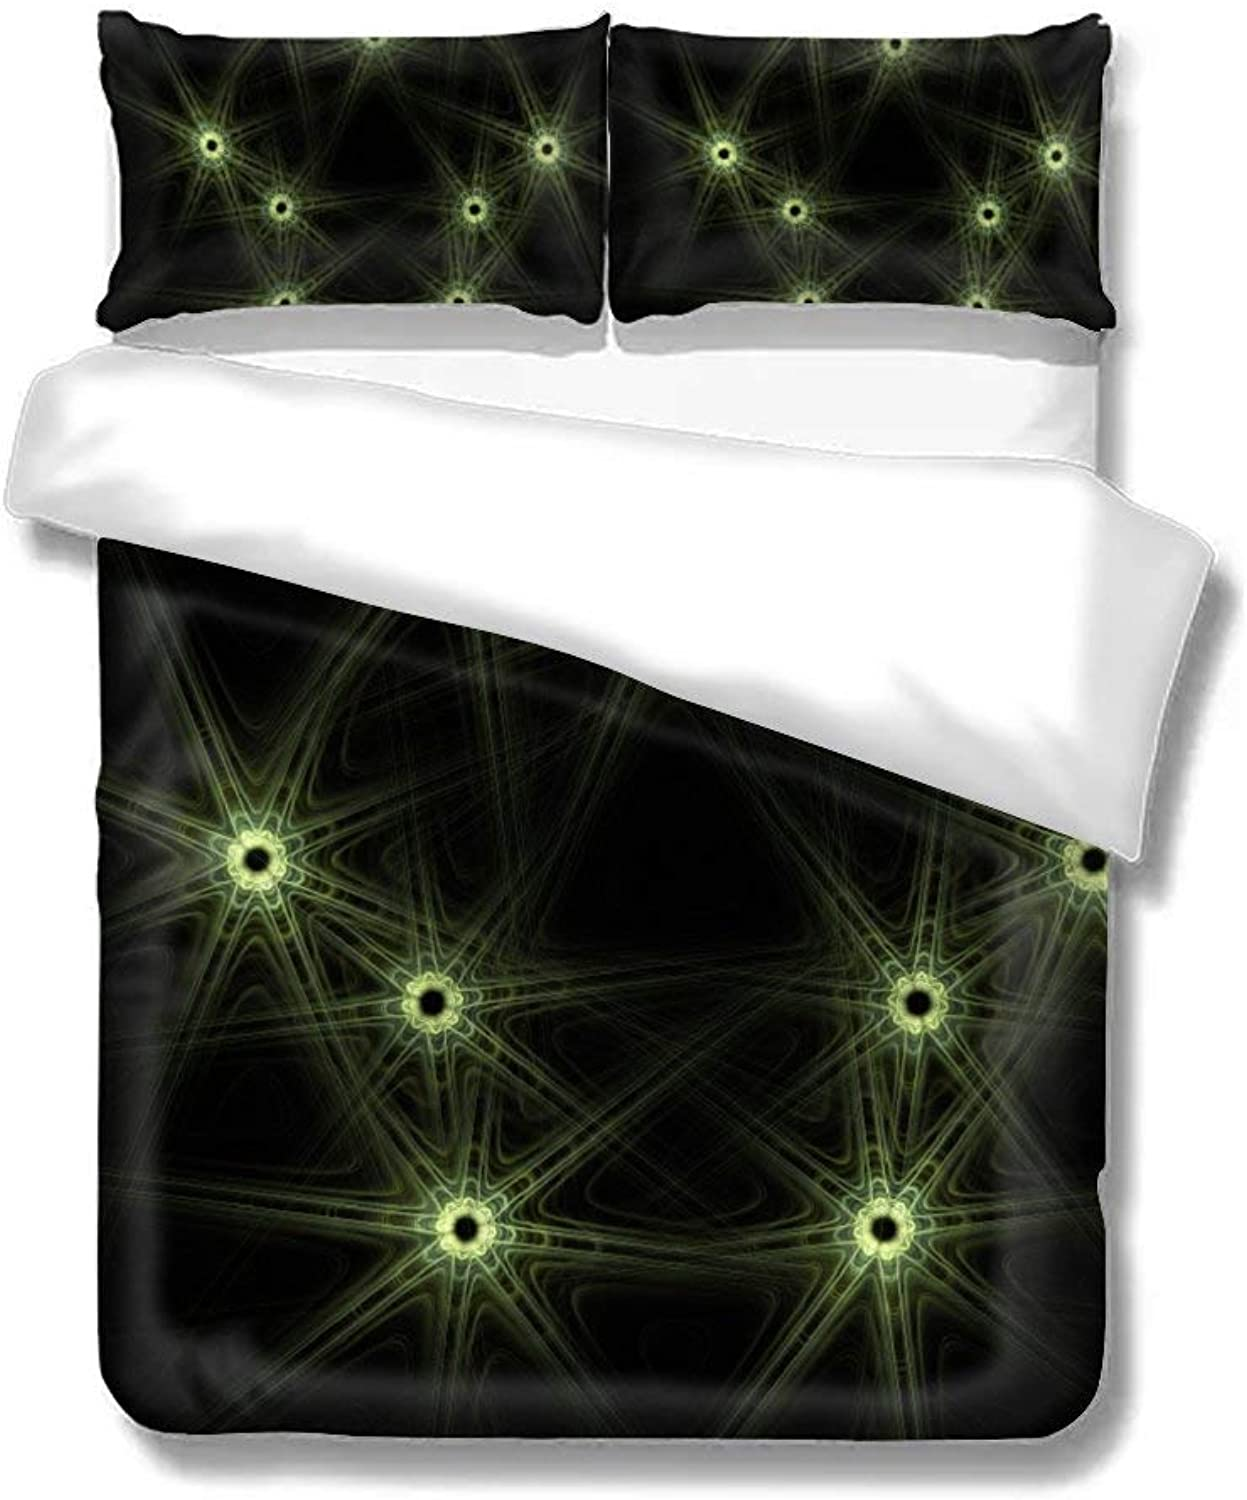 Set of Three On The Bed Fractal 1352687 Home Bedding Duvet Cover Set Bed Sheets Set Soft Comfortable Breathable King Size